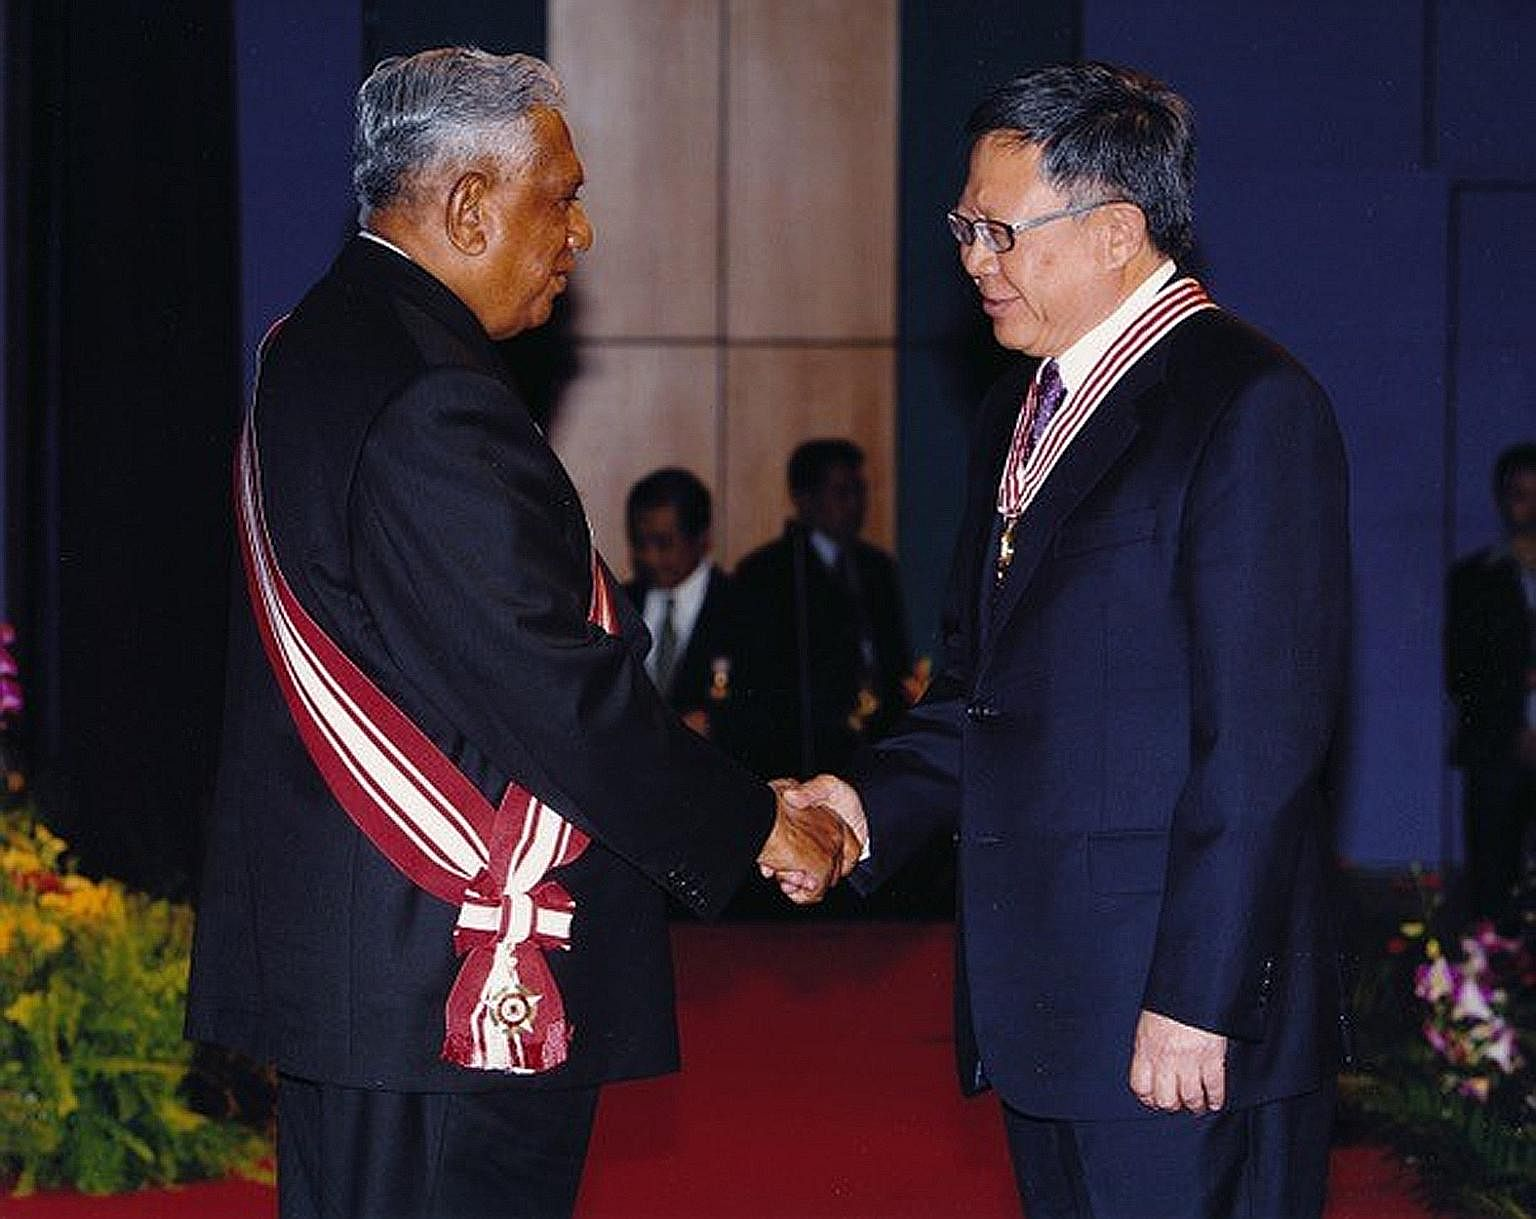 """Mr Eddie Teo receiving the Distinguished Service Order from then President S R Nathan in 2006. Mr Teo, who has been awarded the Order of Nila Utama (First Class) this year, said Mr Nathan """"taught me the values, discipline and instincts required for p"""